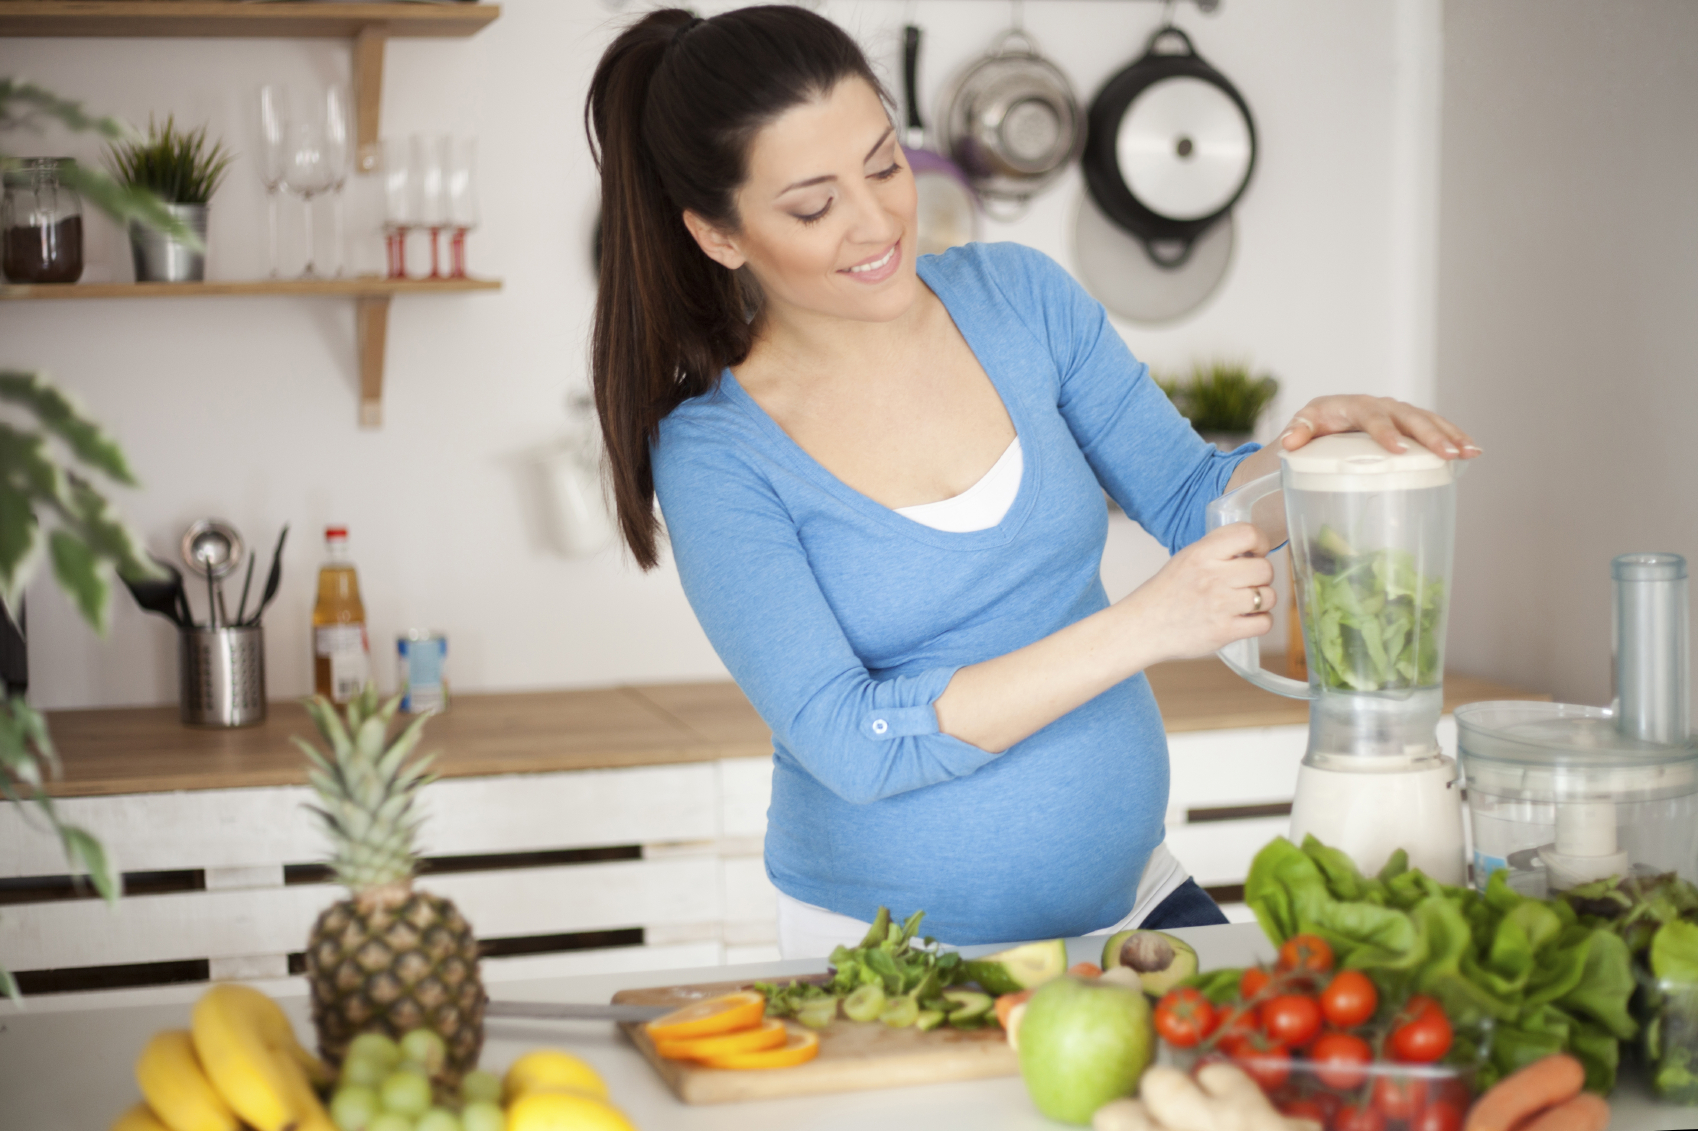 iodine supplements for pregnant women